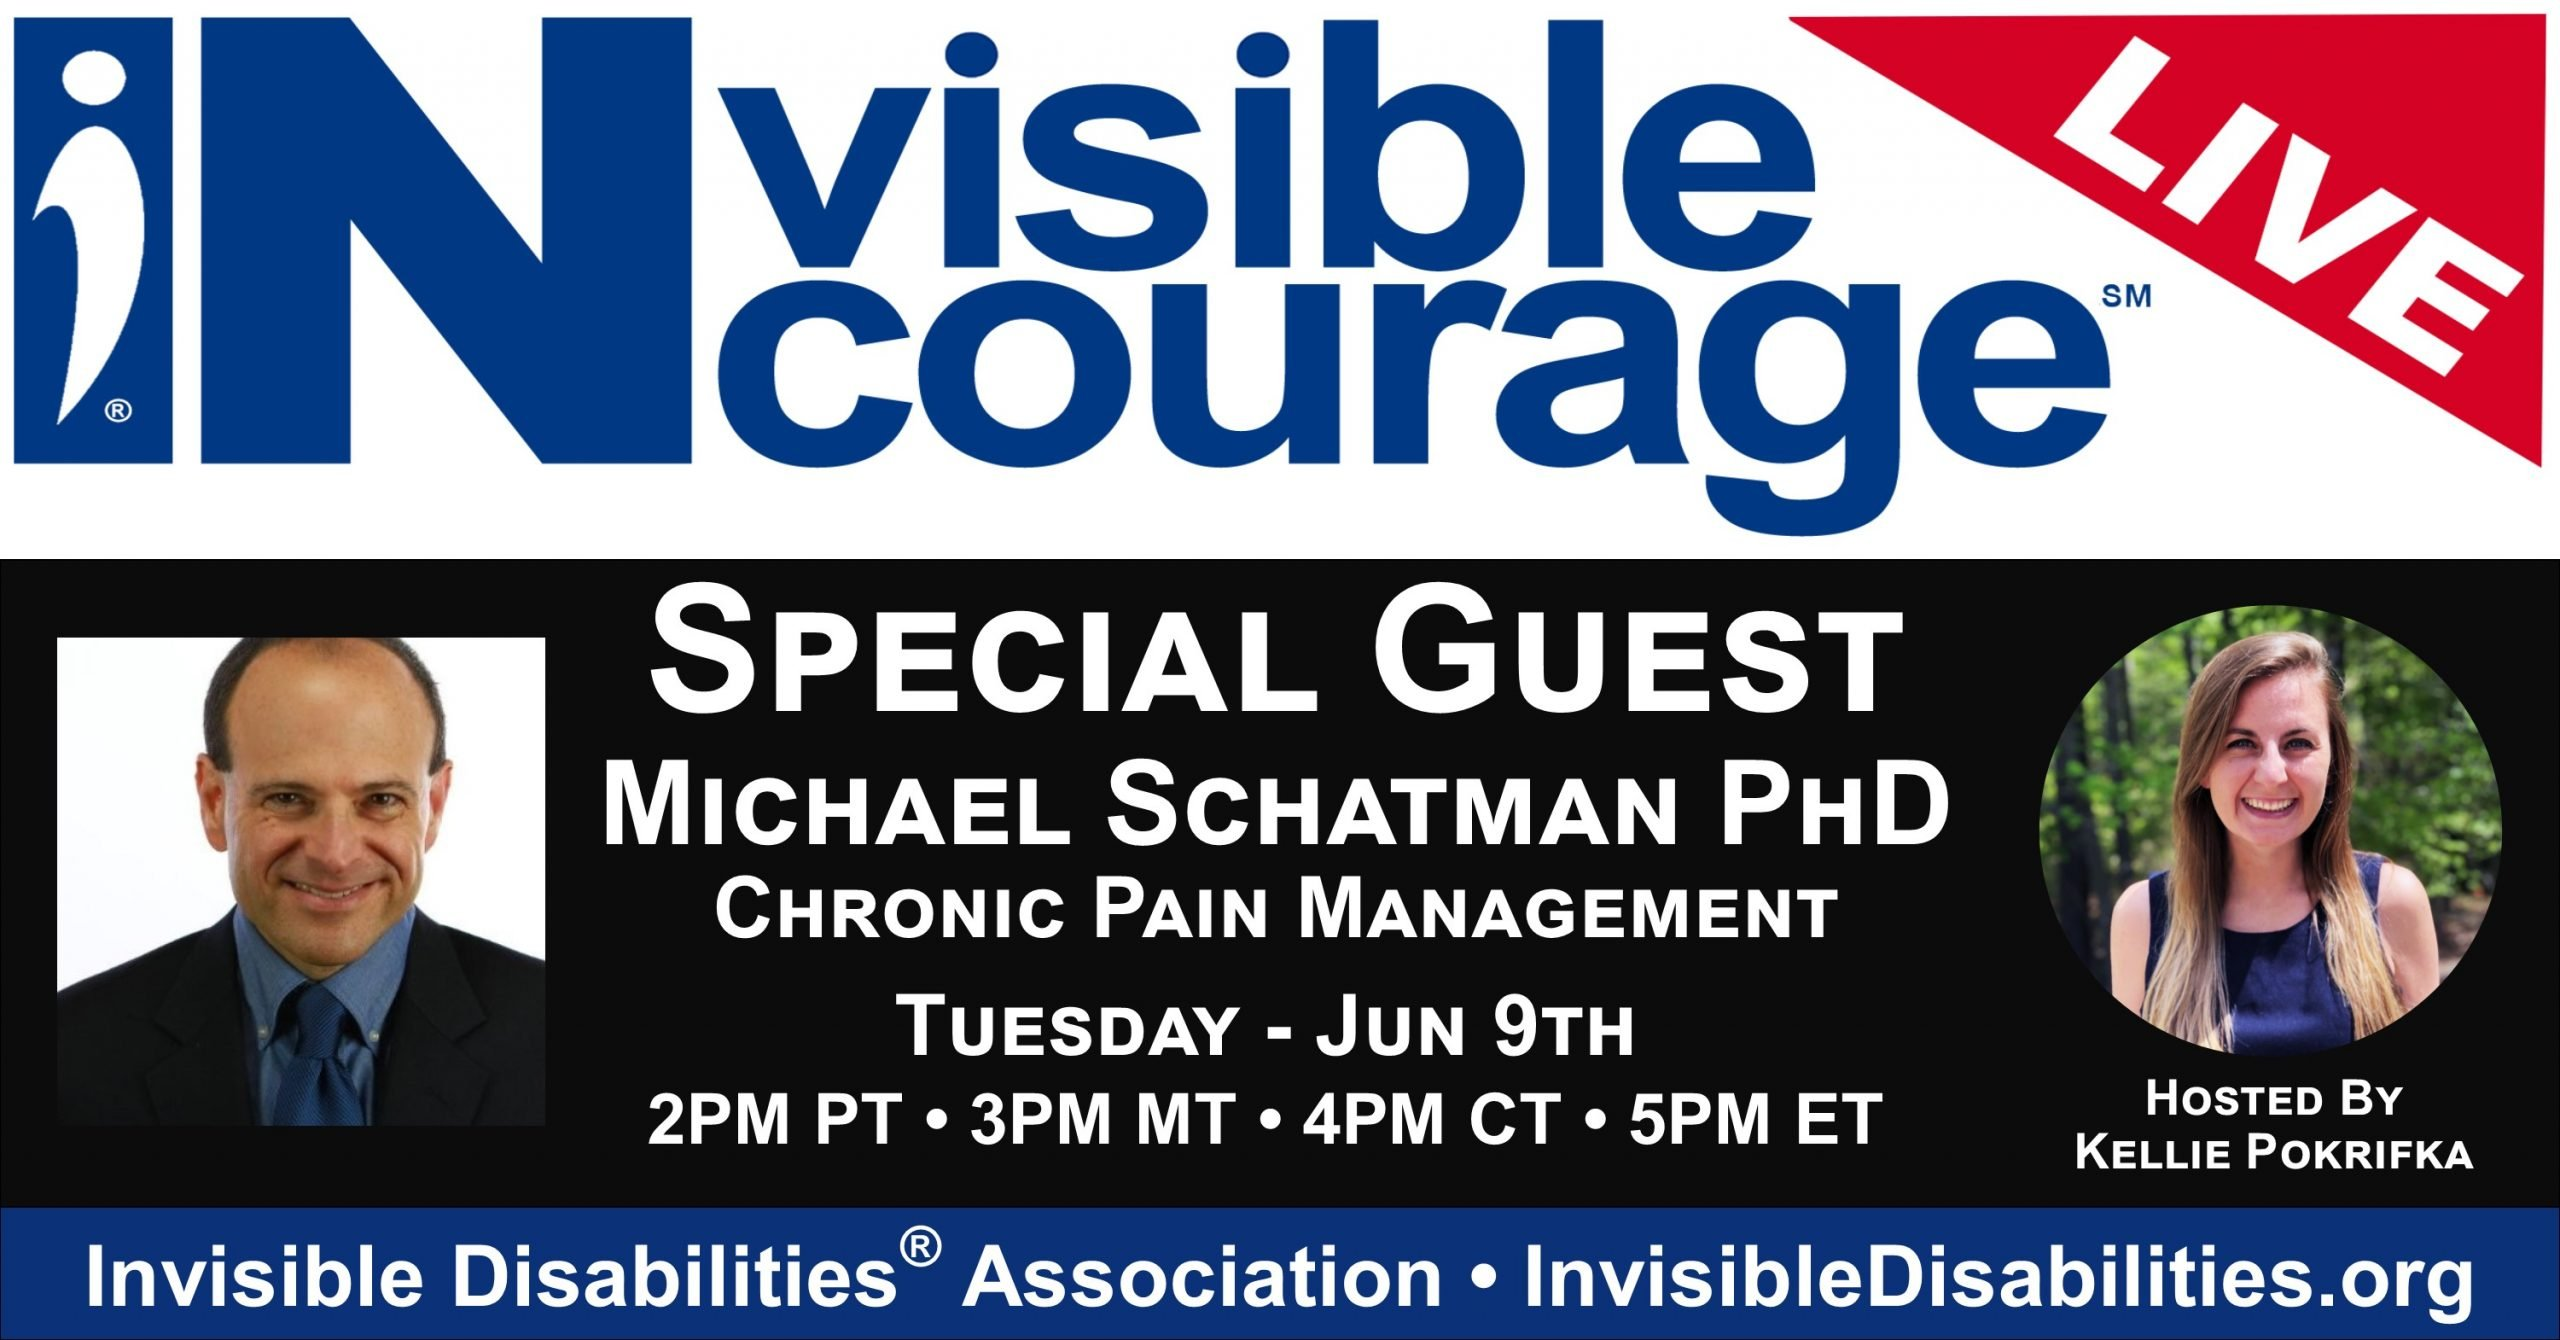 InVisible InCourage Live with Michael Schatman PhD – Chronic Pain Management - Invisible Disabilities Association